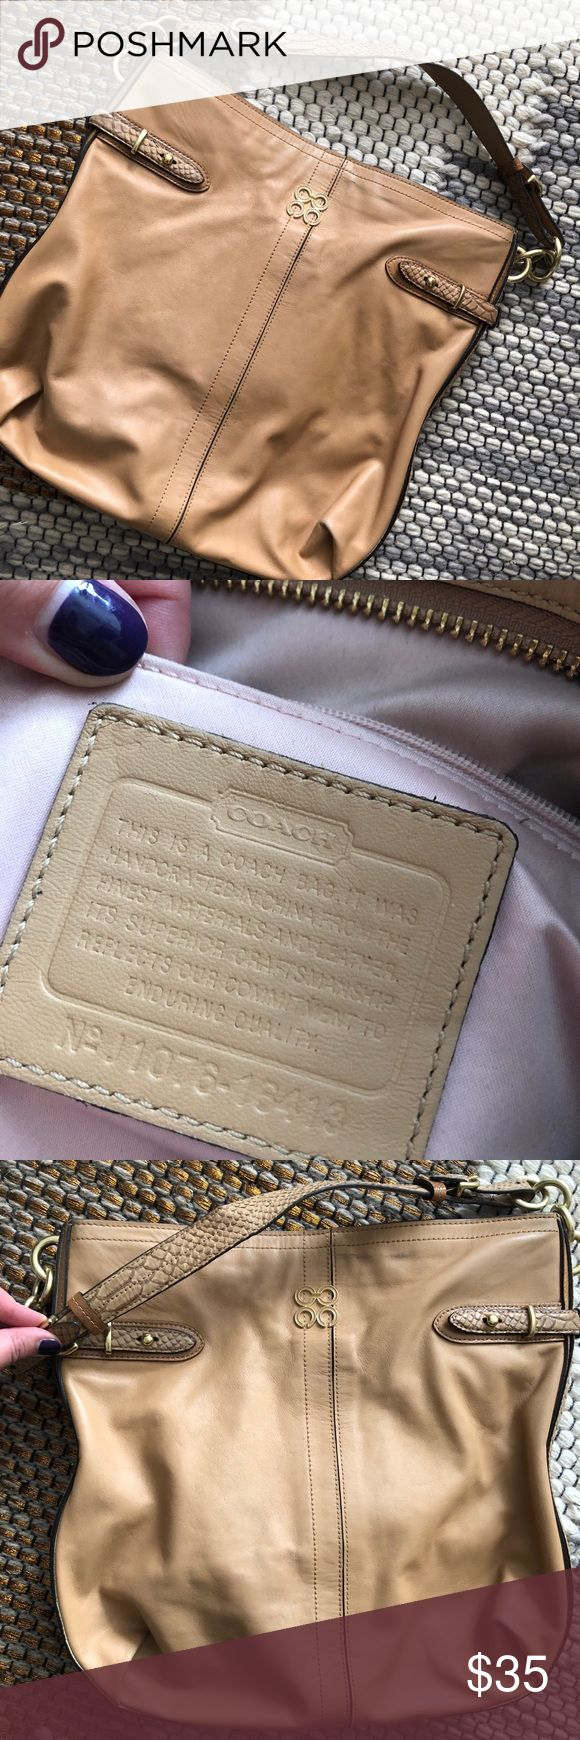 Coach Beige Shoulder Bag Beautiful all leather COACH shoulder bag! Exterior in fantastic condition, small ink stain (pictured) inside. Snakeskin and brushed gold trim! Great everyday bag. Coach Bags Shoulder Bags